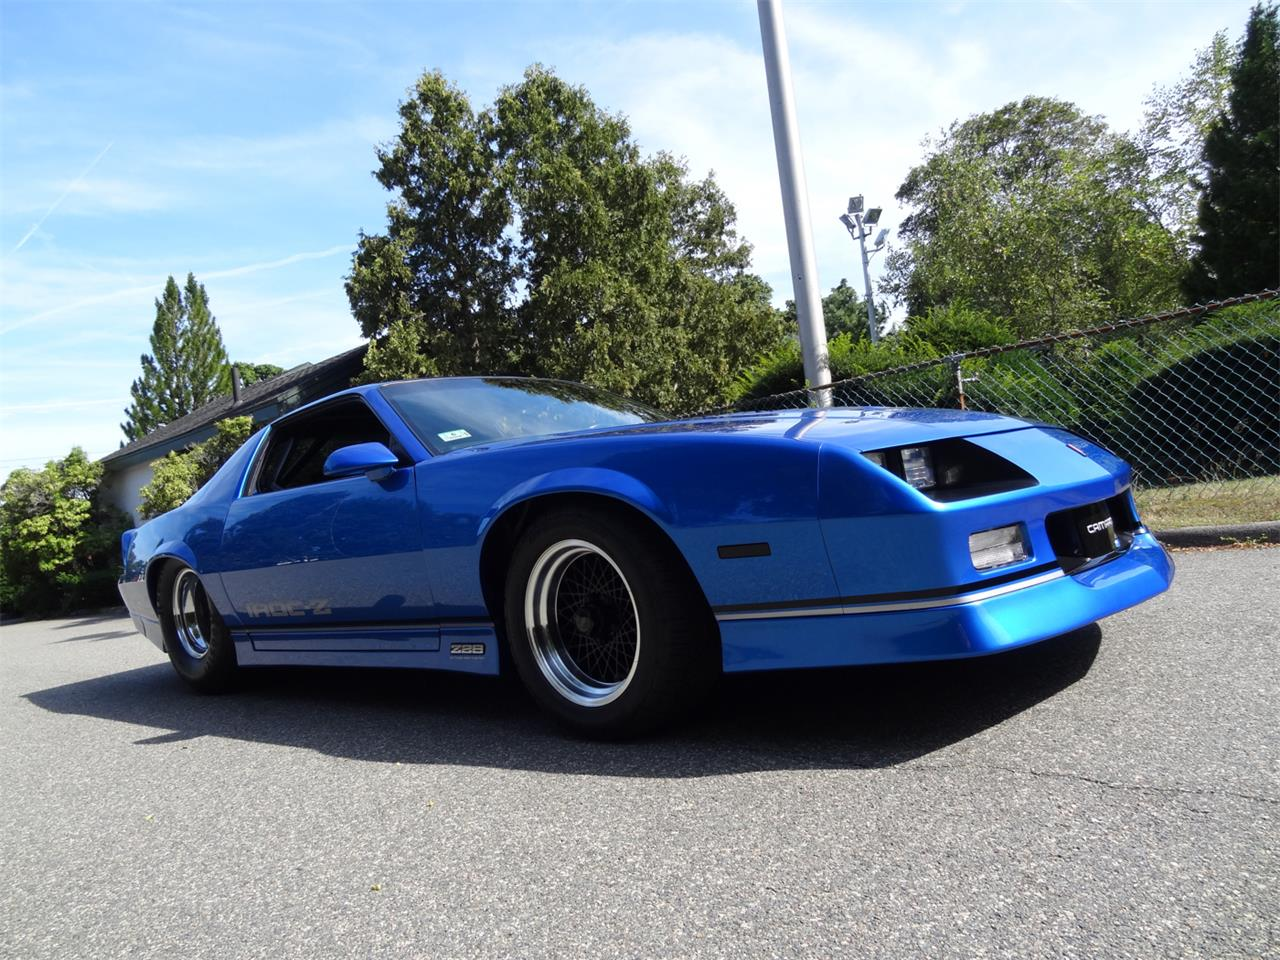 Large Picture of 1983 Camaro IROC Z28 located in Massachusetts - $30,000.00 Offered by a Private Seller - QUEA